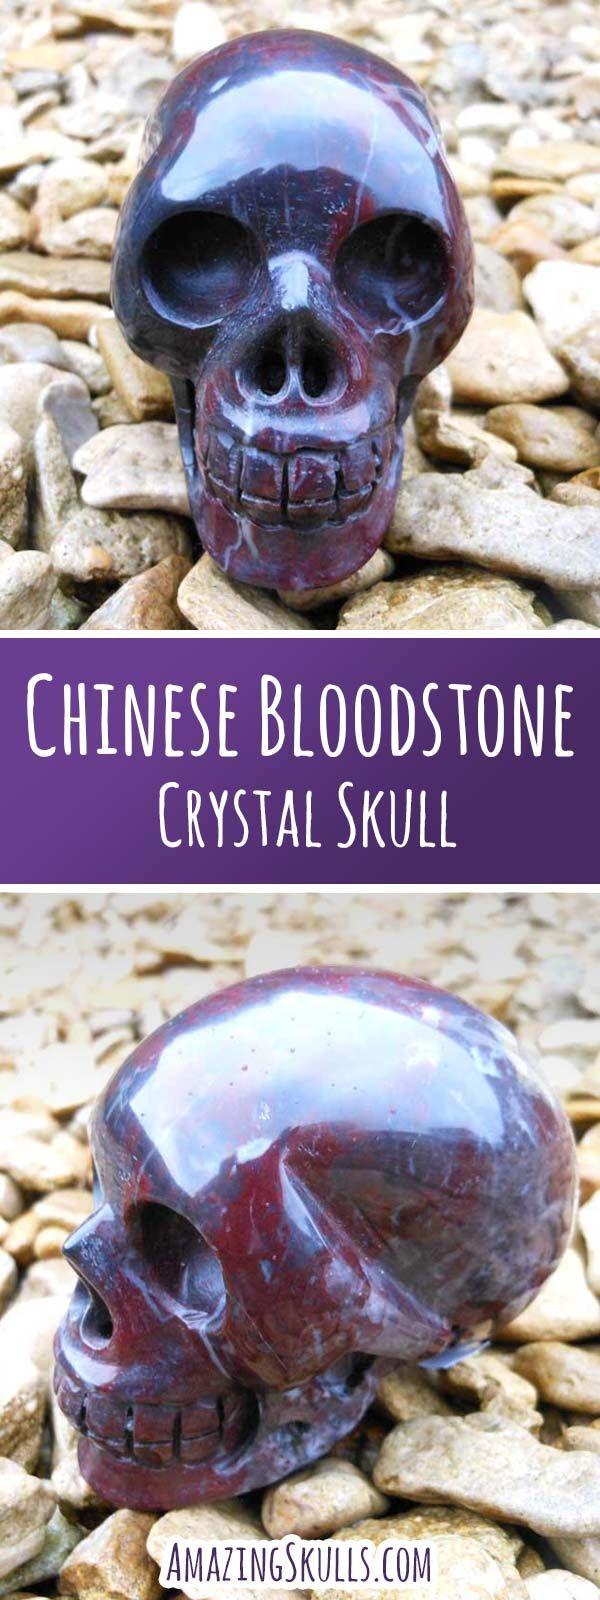 Bloodstone is  known as the stone of courage, Chinese Bloodstone, has a deep red colour to it, aiding in finding your inner strength and purpose, boosting your spirit and the courage to step forward in life. https://amazingskulls.com/products/chinese-bloodstone-crystal-skull?utm_source=Pinterest&utm_campaign=Chinese%20Bloodstone&utm_medium=Promoted%20Pin&utm_term=Chinese%20Bloodstone%20Crystal%20Skulls